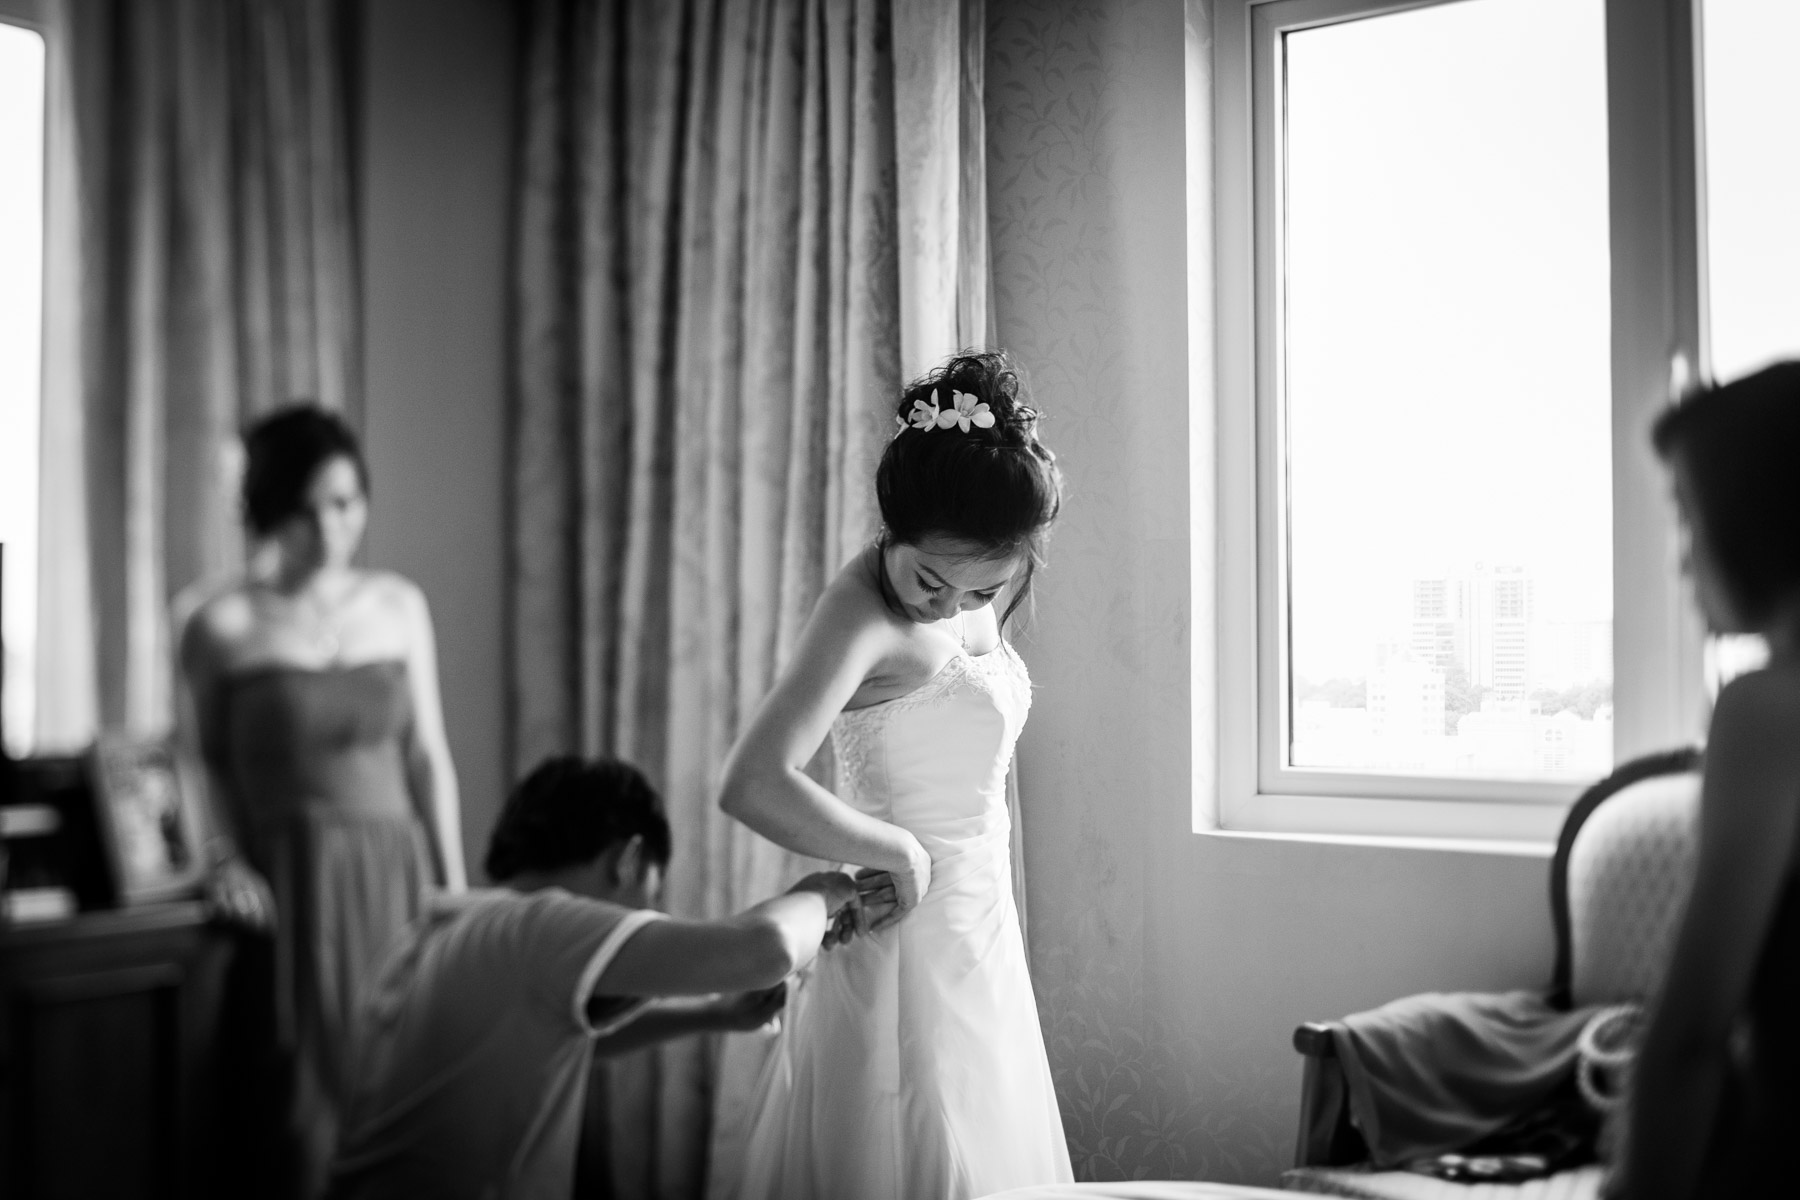 Thailand-Wedding-Photography-Getting-Ready-37